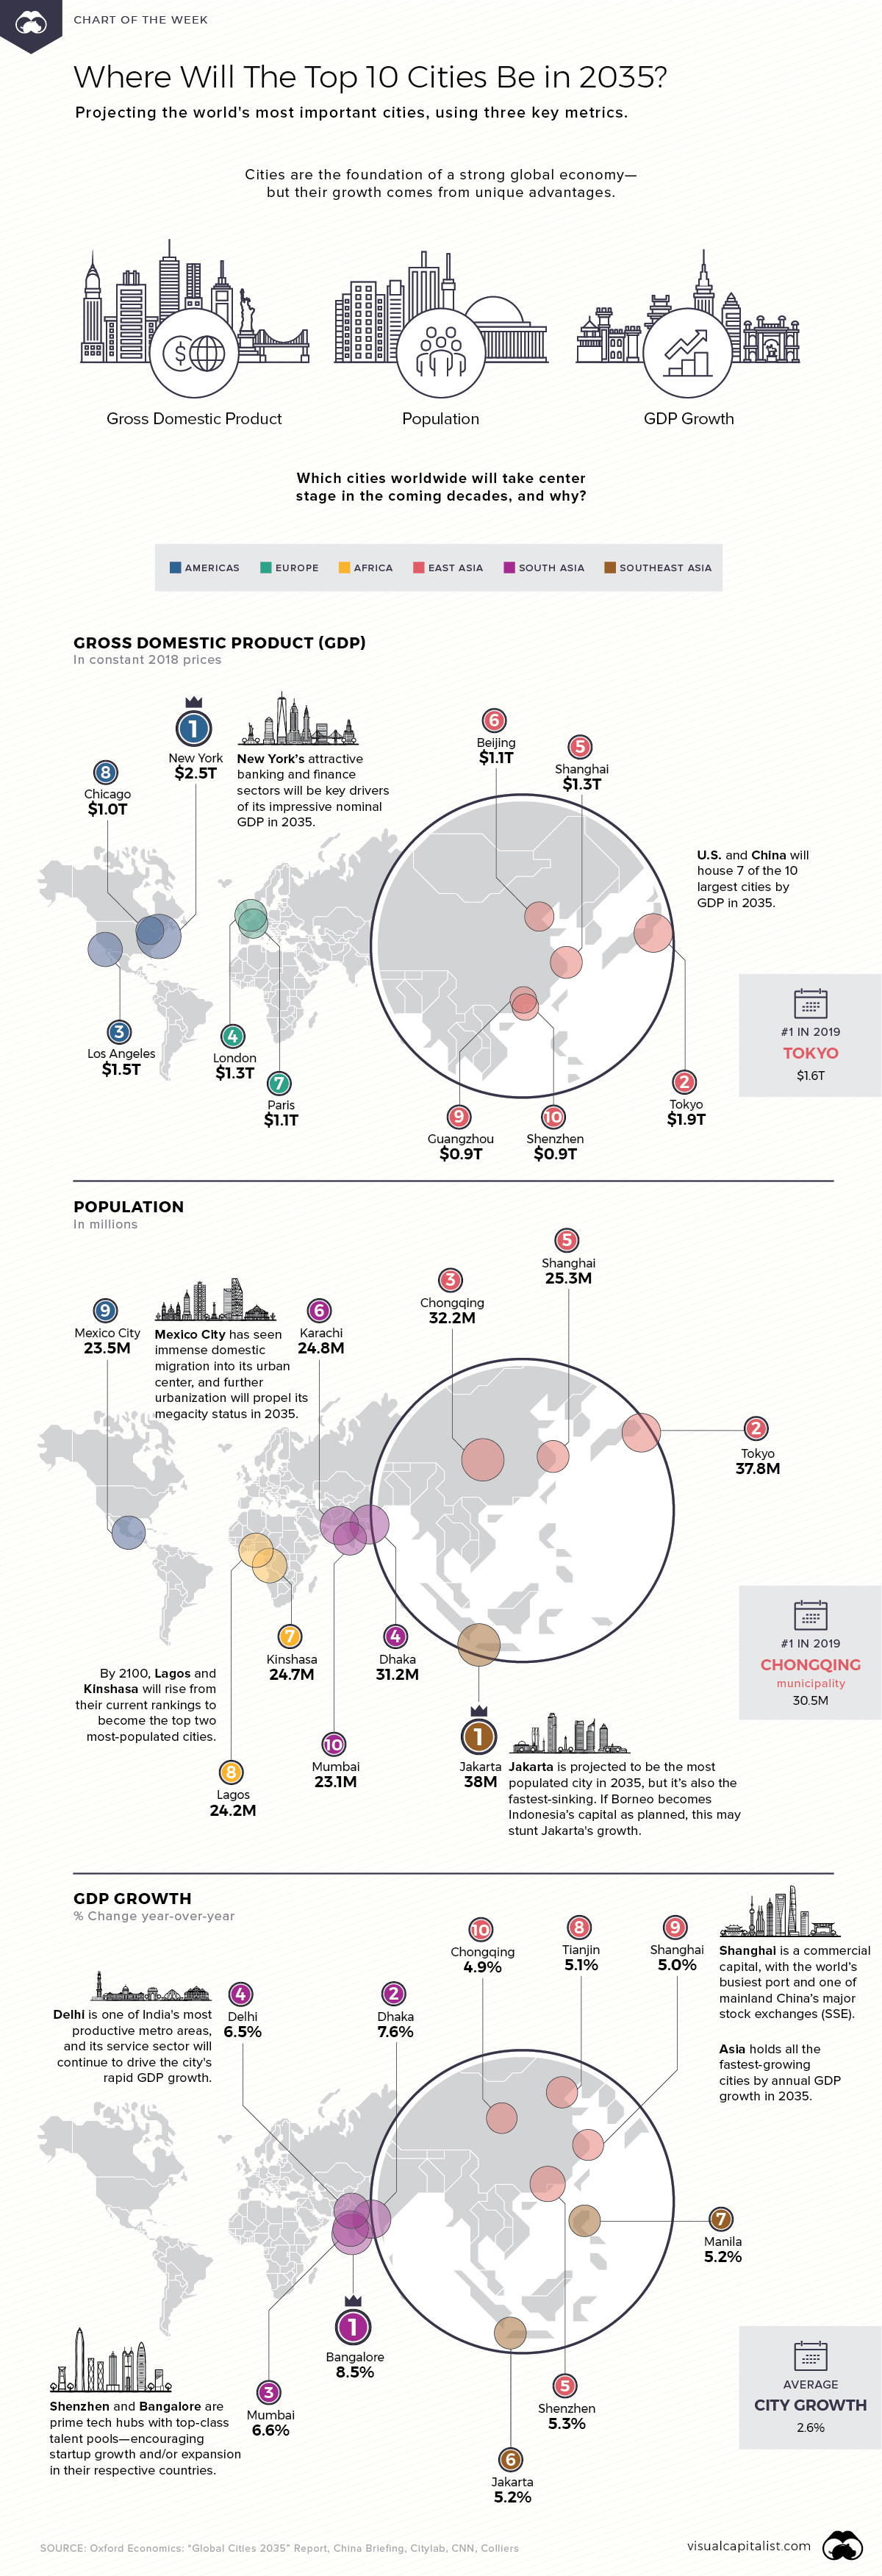 Where will the Top 10 cities be based on GDP, Population and GDP Growth